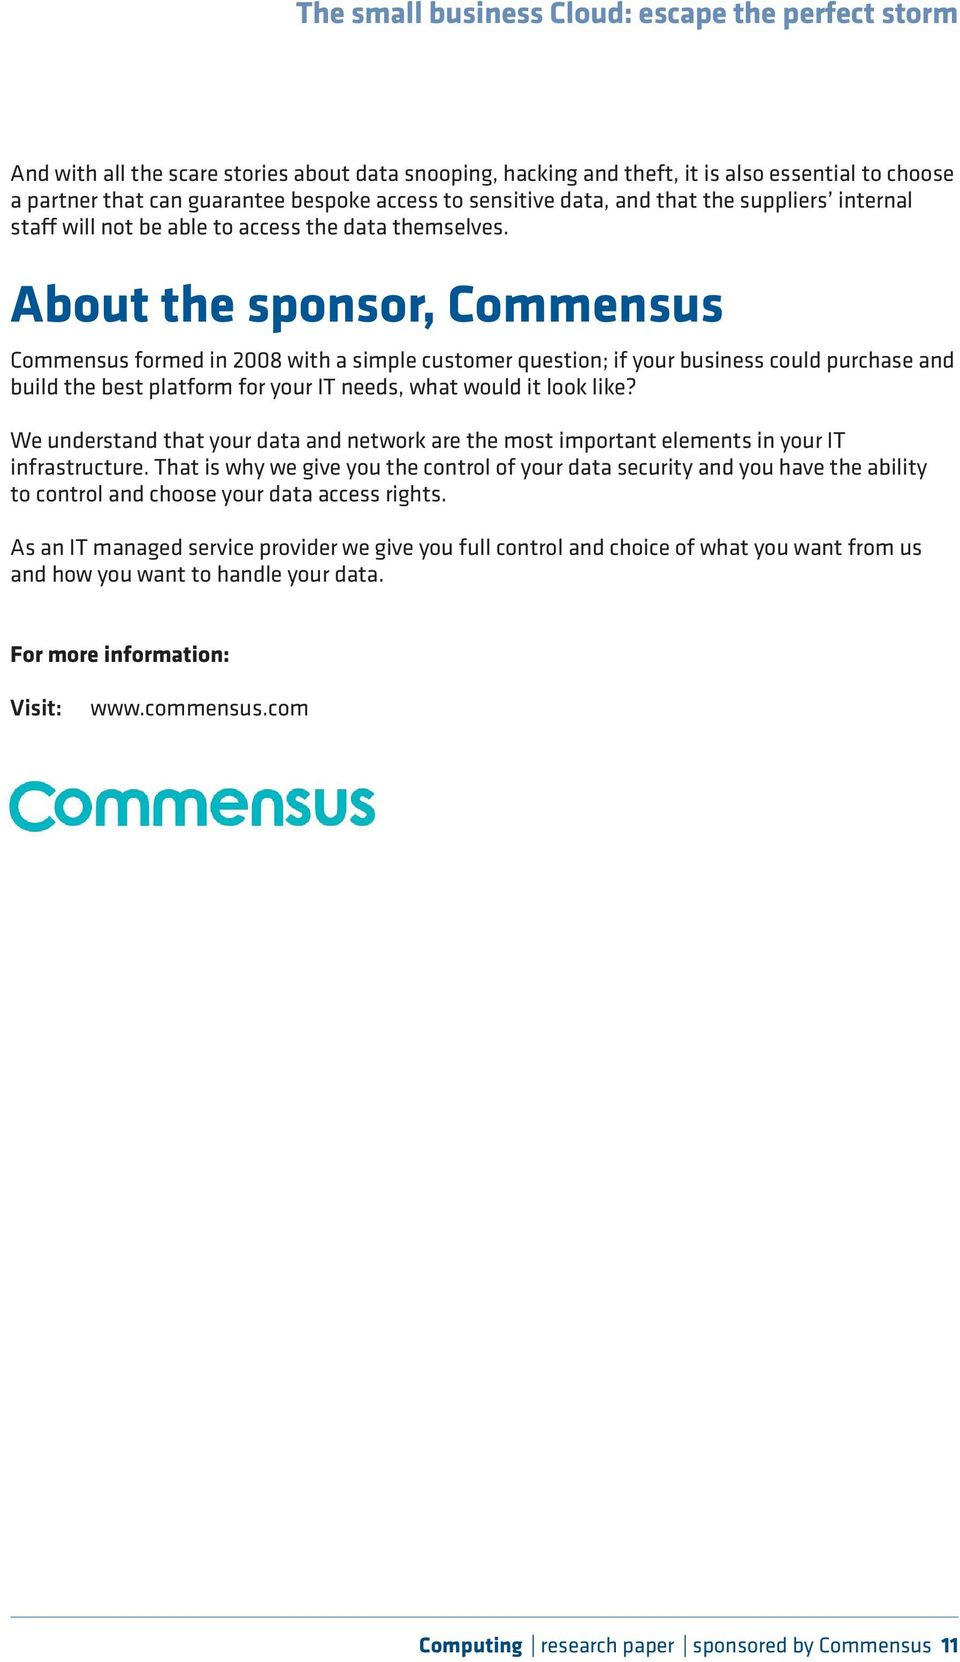 About the sponsor, Commensus Commensus formed in 2008 with a simple customer question; if your business could purchase and build the best platform for your IT needs, what would it look like?